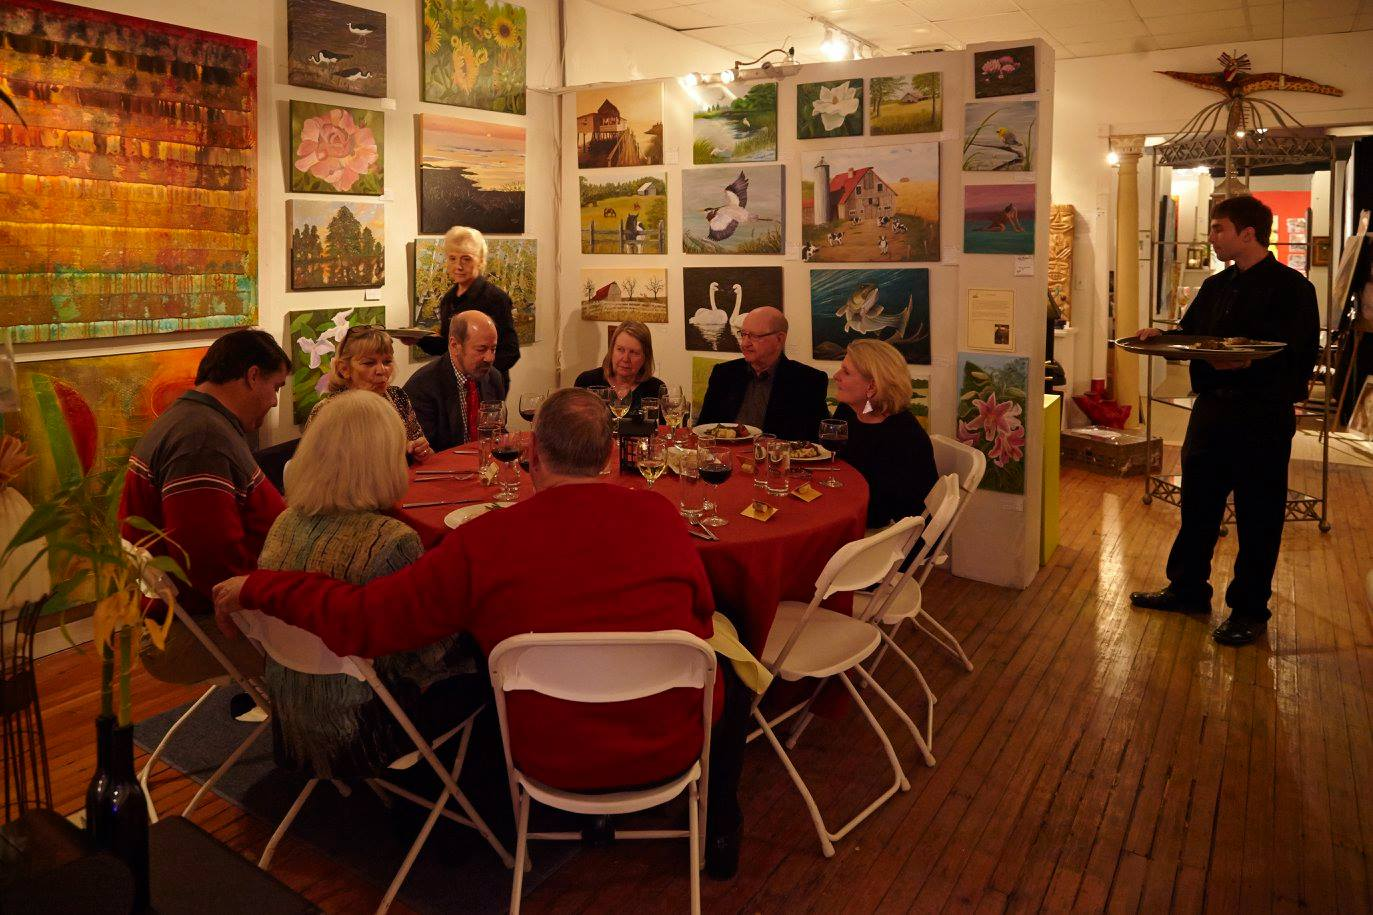 canvas-and-cuisine-at-artmongerz-greensboro-tracey-marshall-collaboration-event-11.jpg